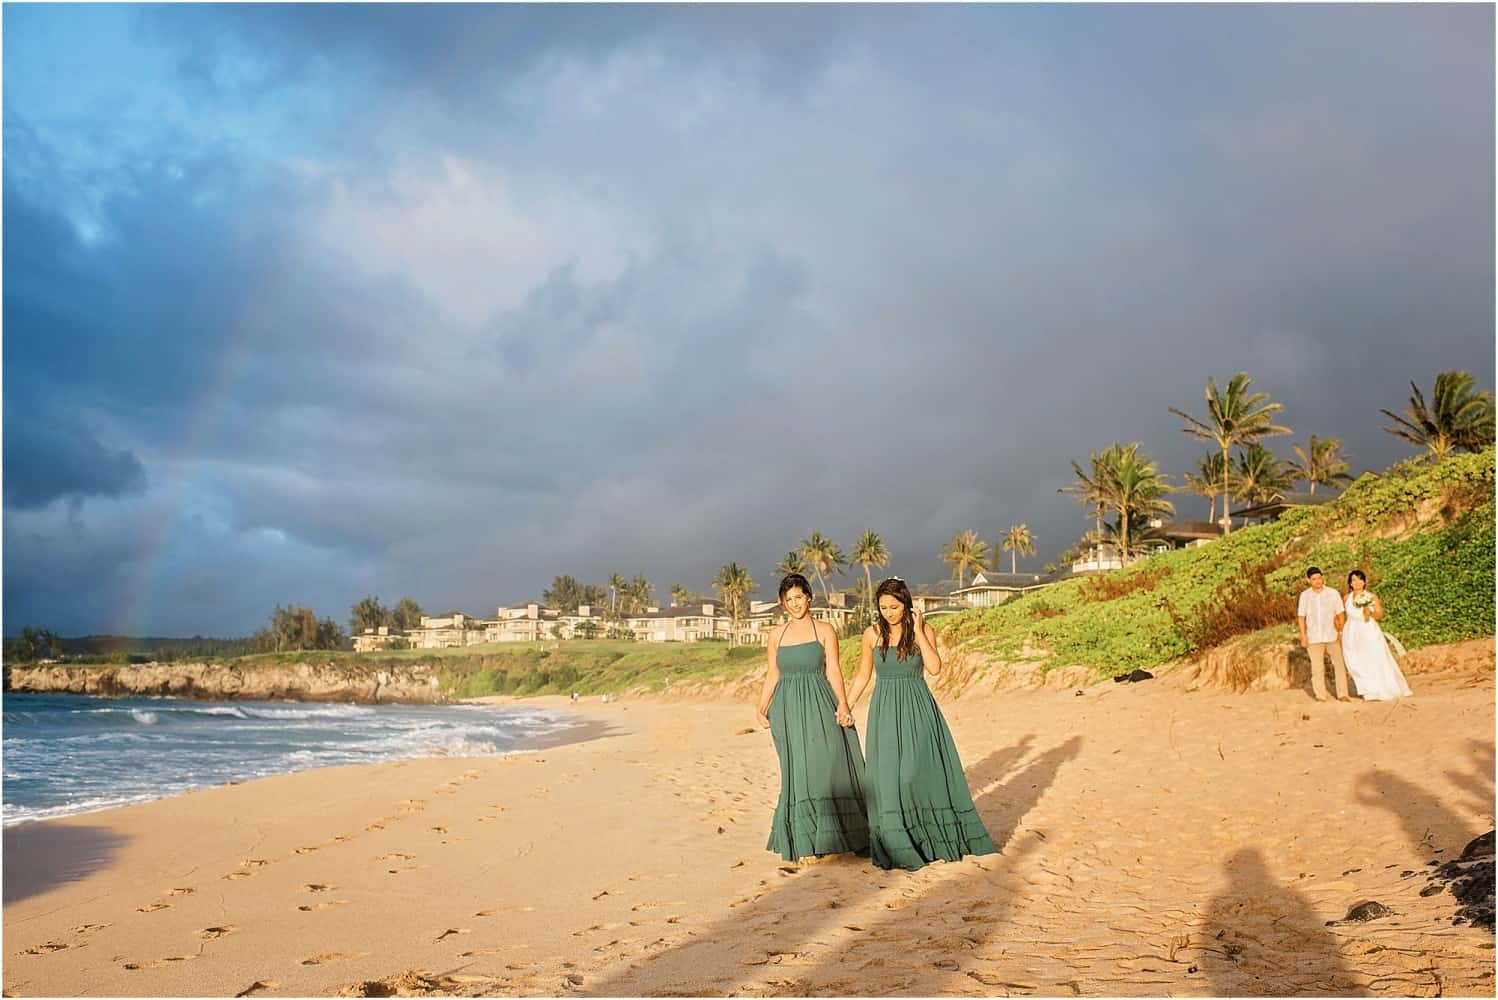 Maui Vow Renewal at Ironwood Beach in Kapalua by Mariah Milan and Maile Maui Weddings